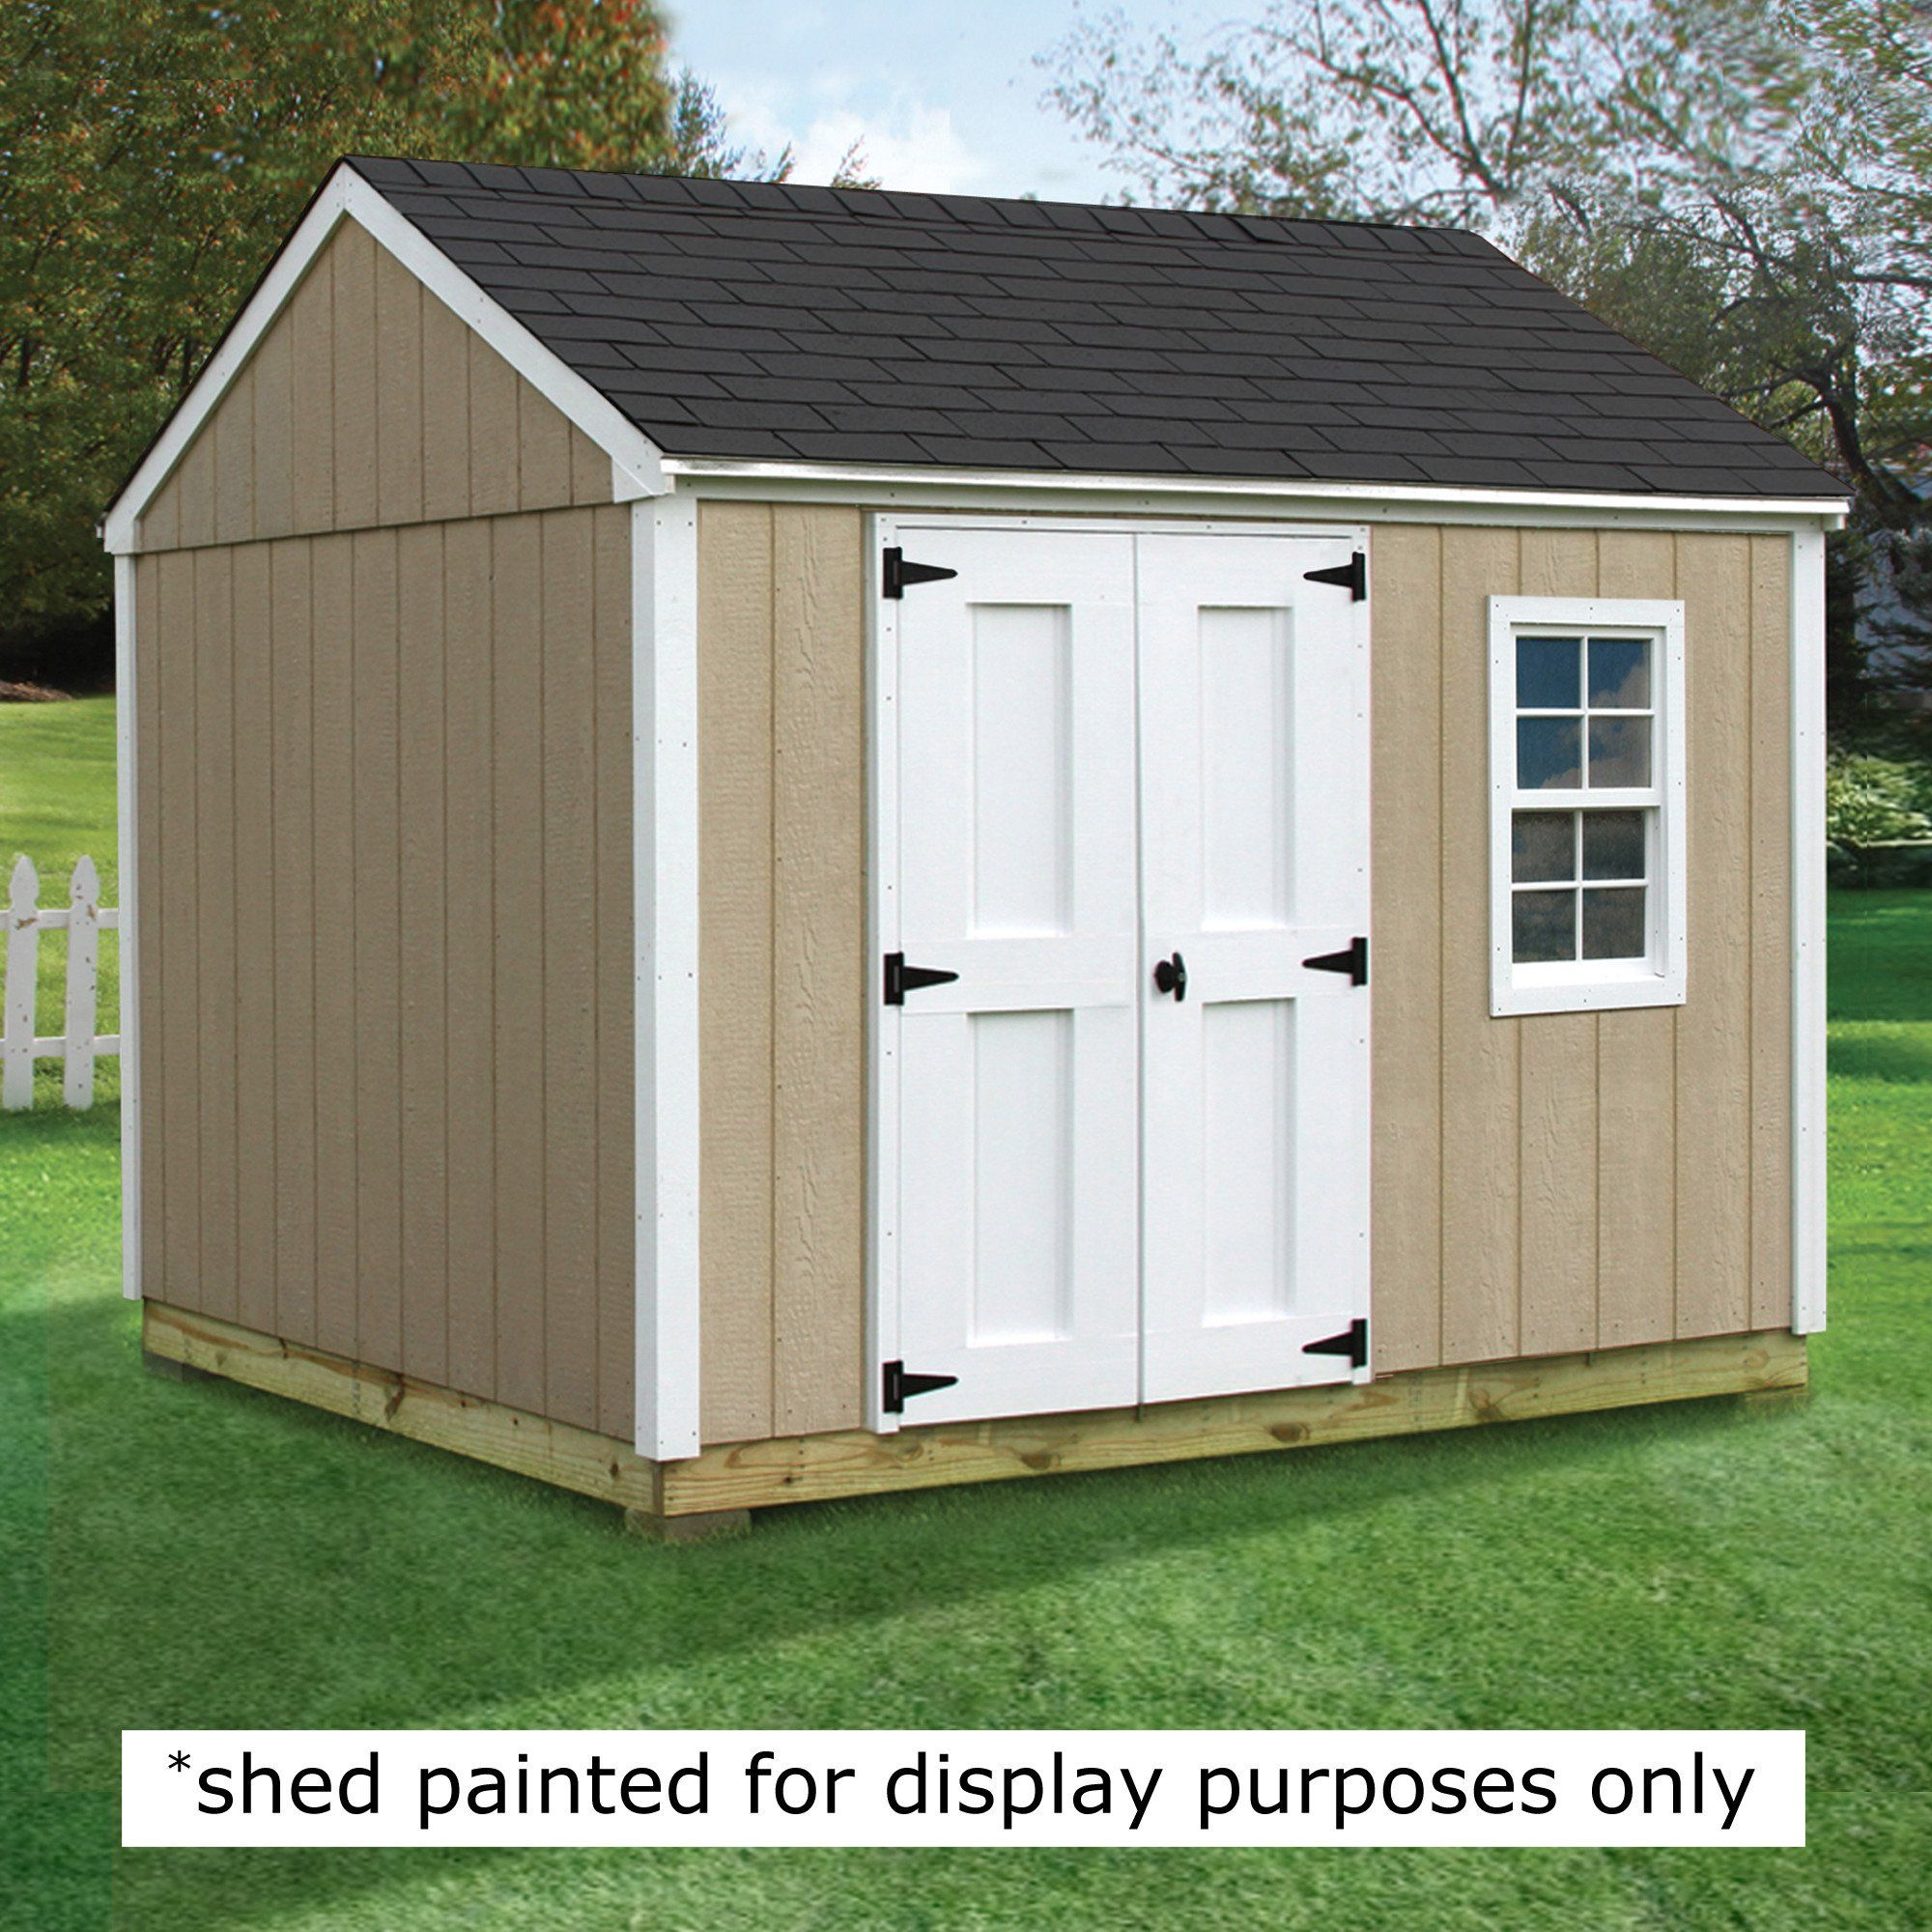 Image Result For Shed Color Schemes